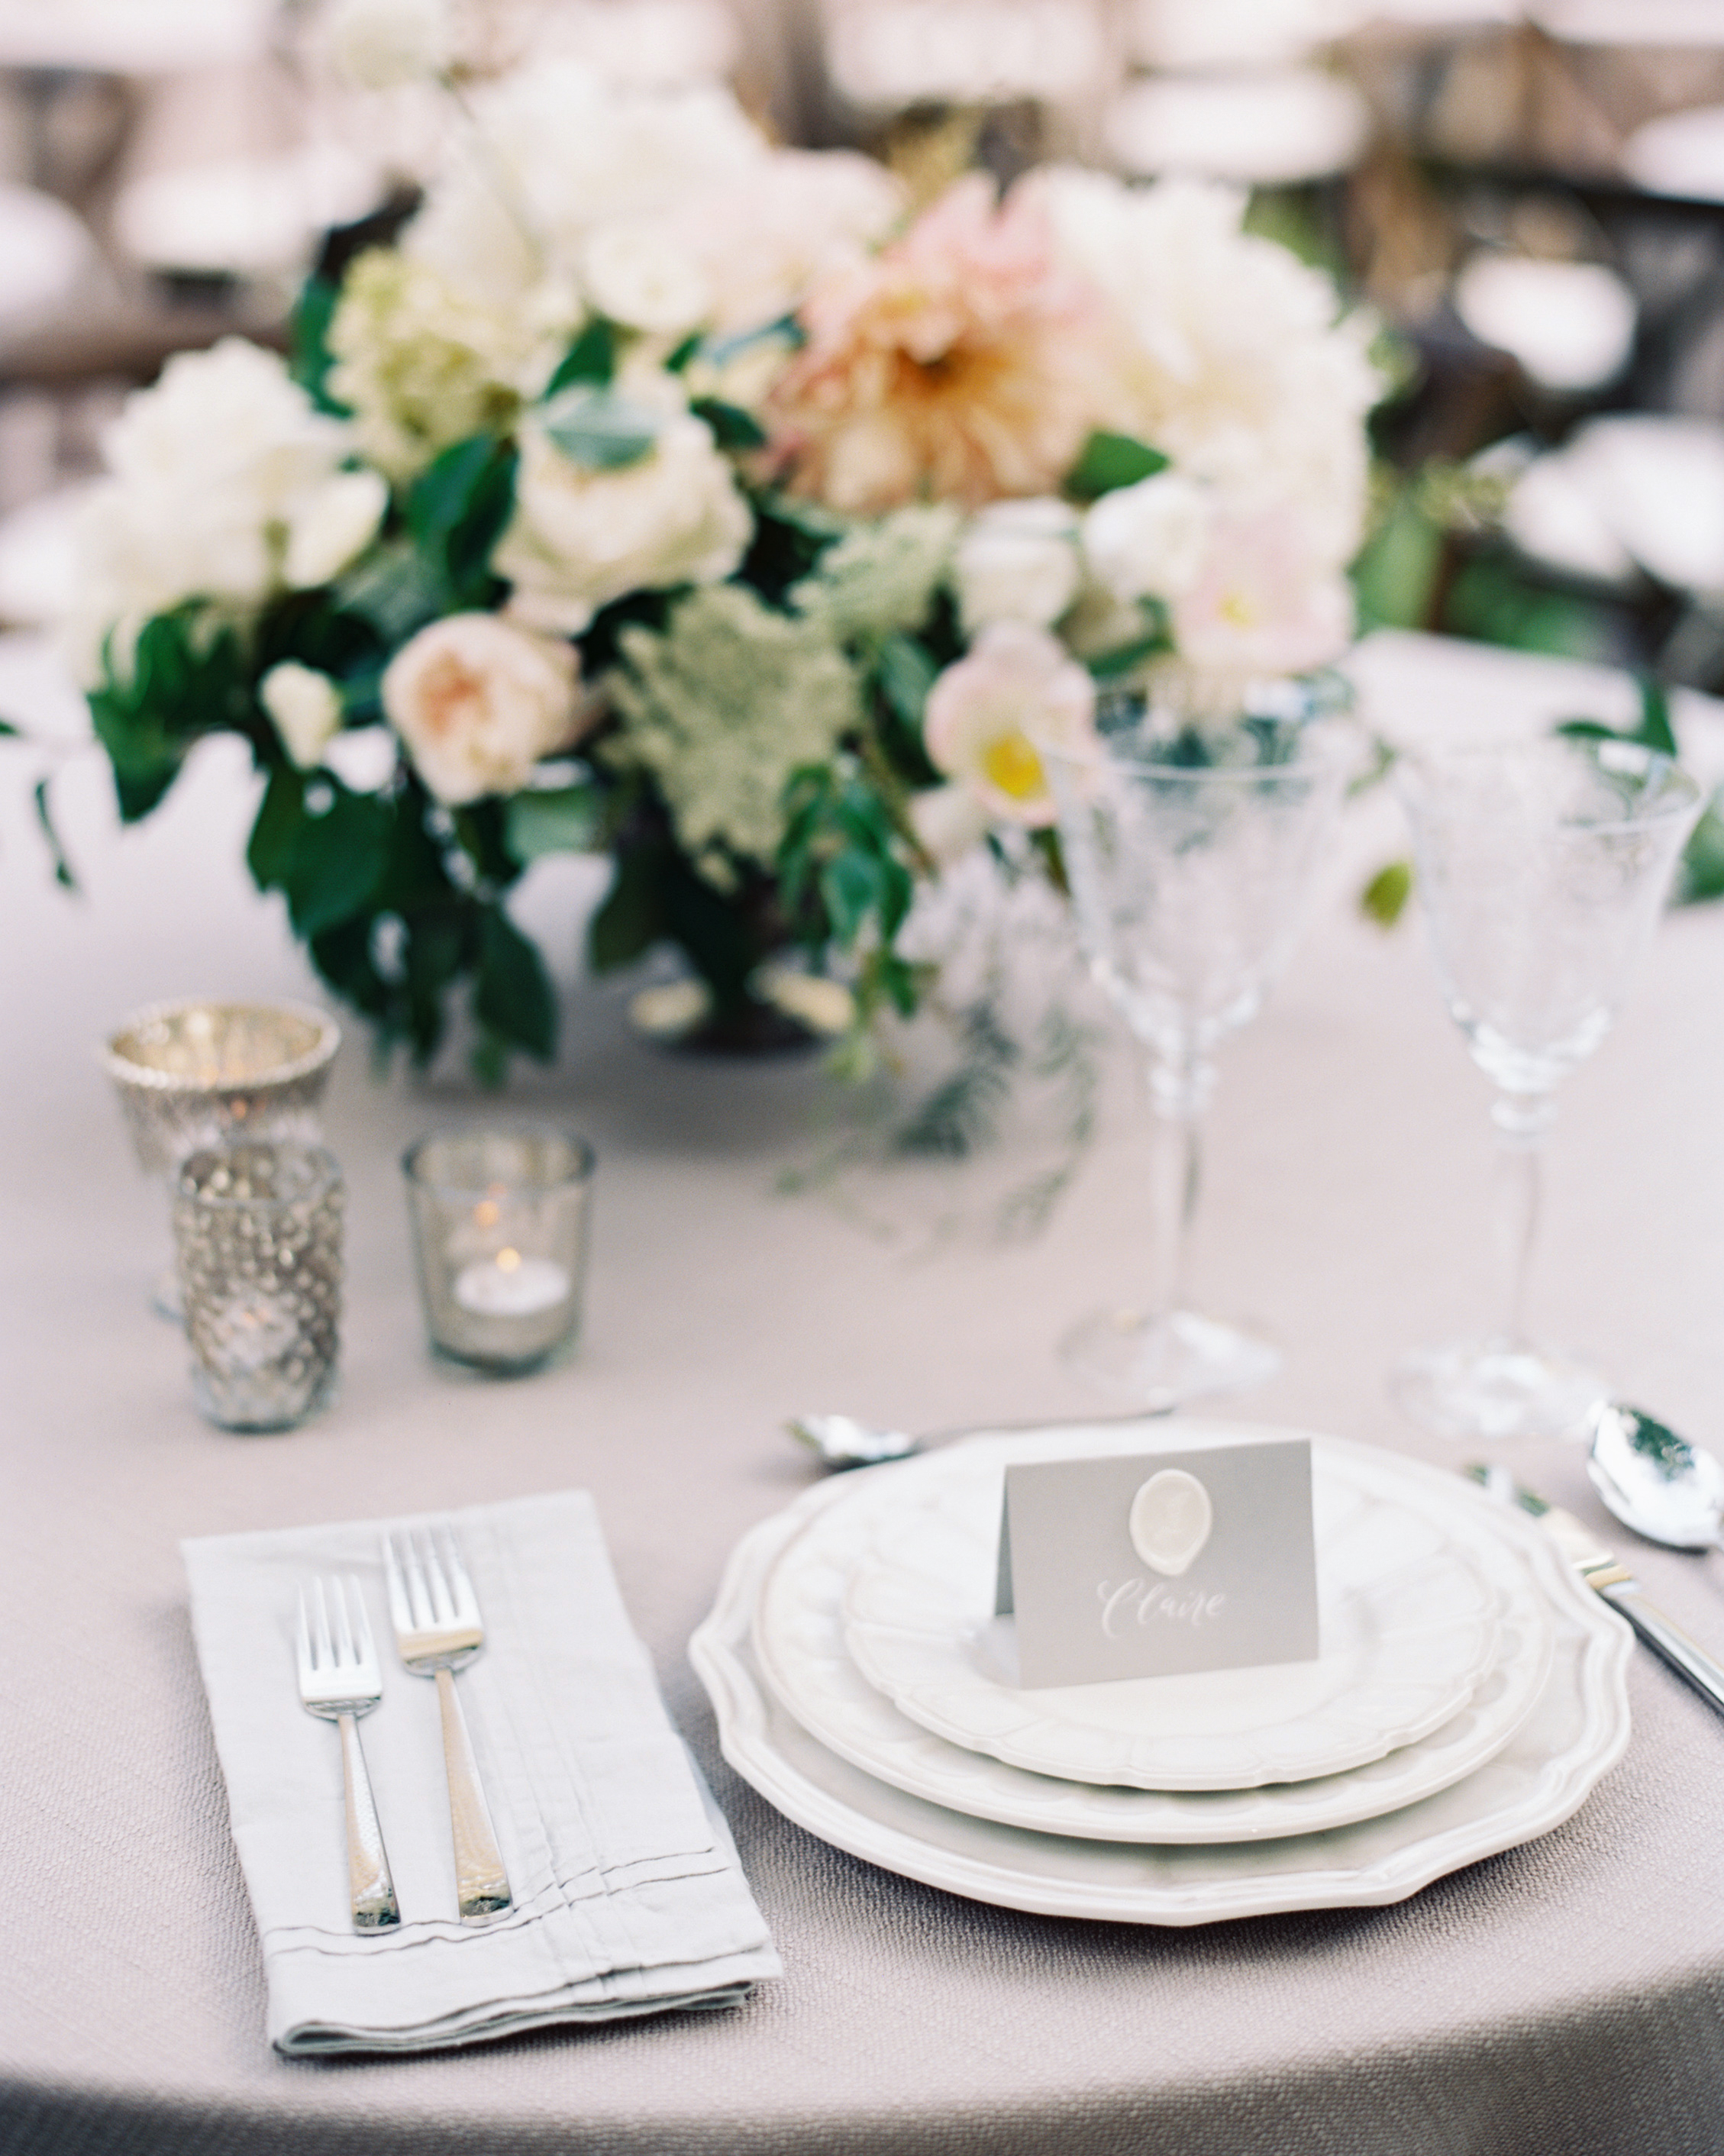 irby-adam-wedding-table-205-s111660-1014.jpg